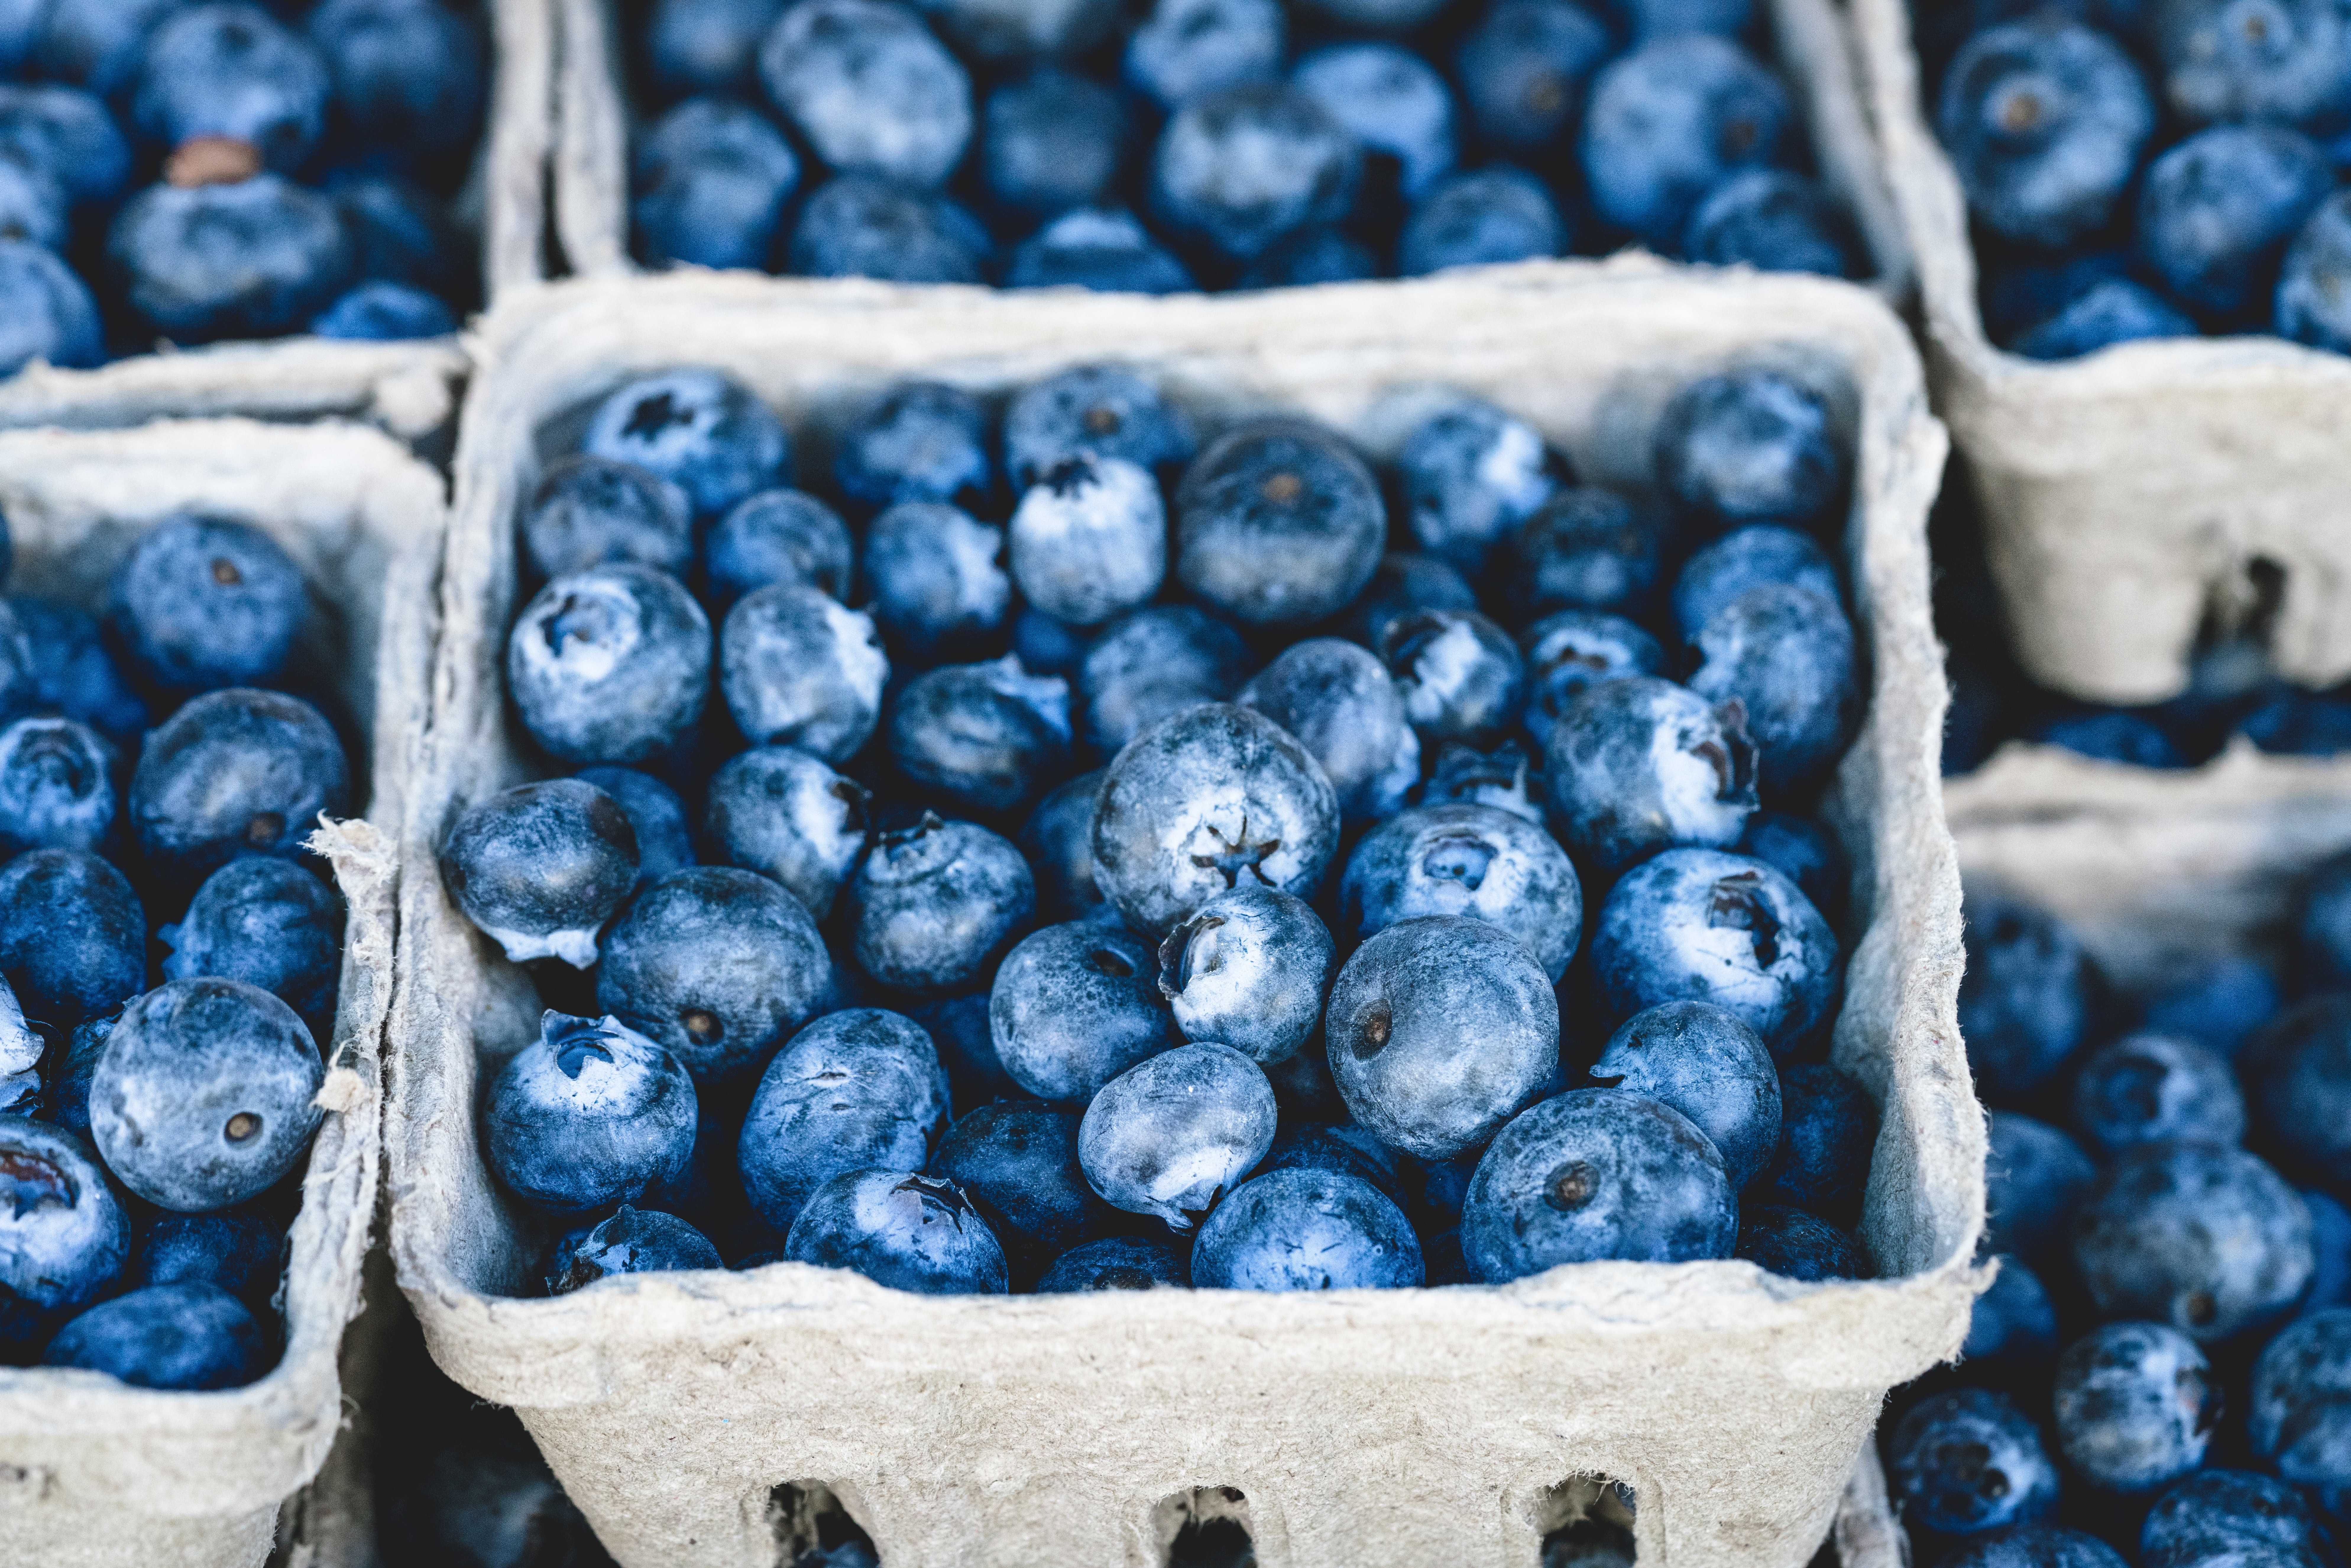 berry-blue-blueberries-70862